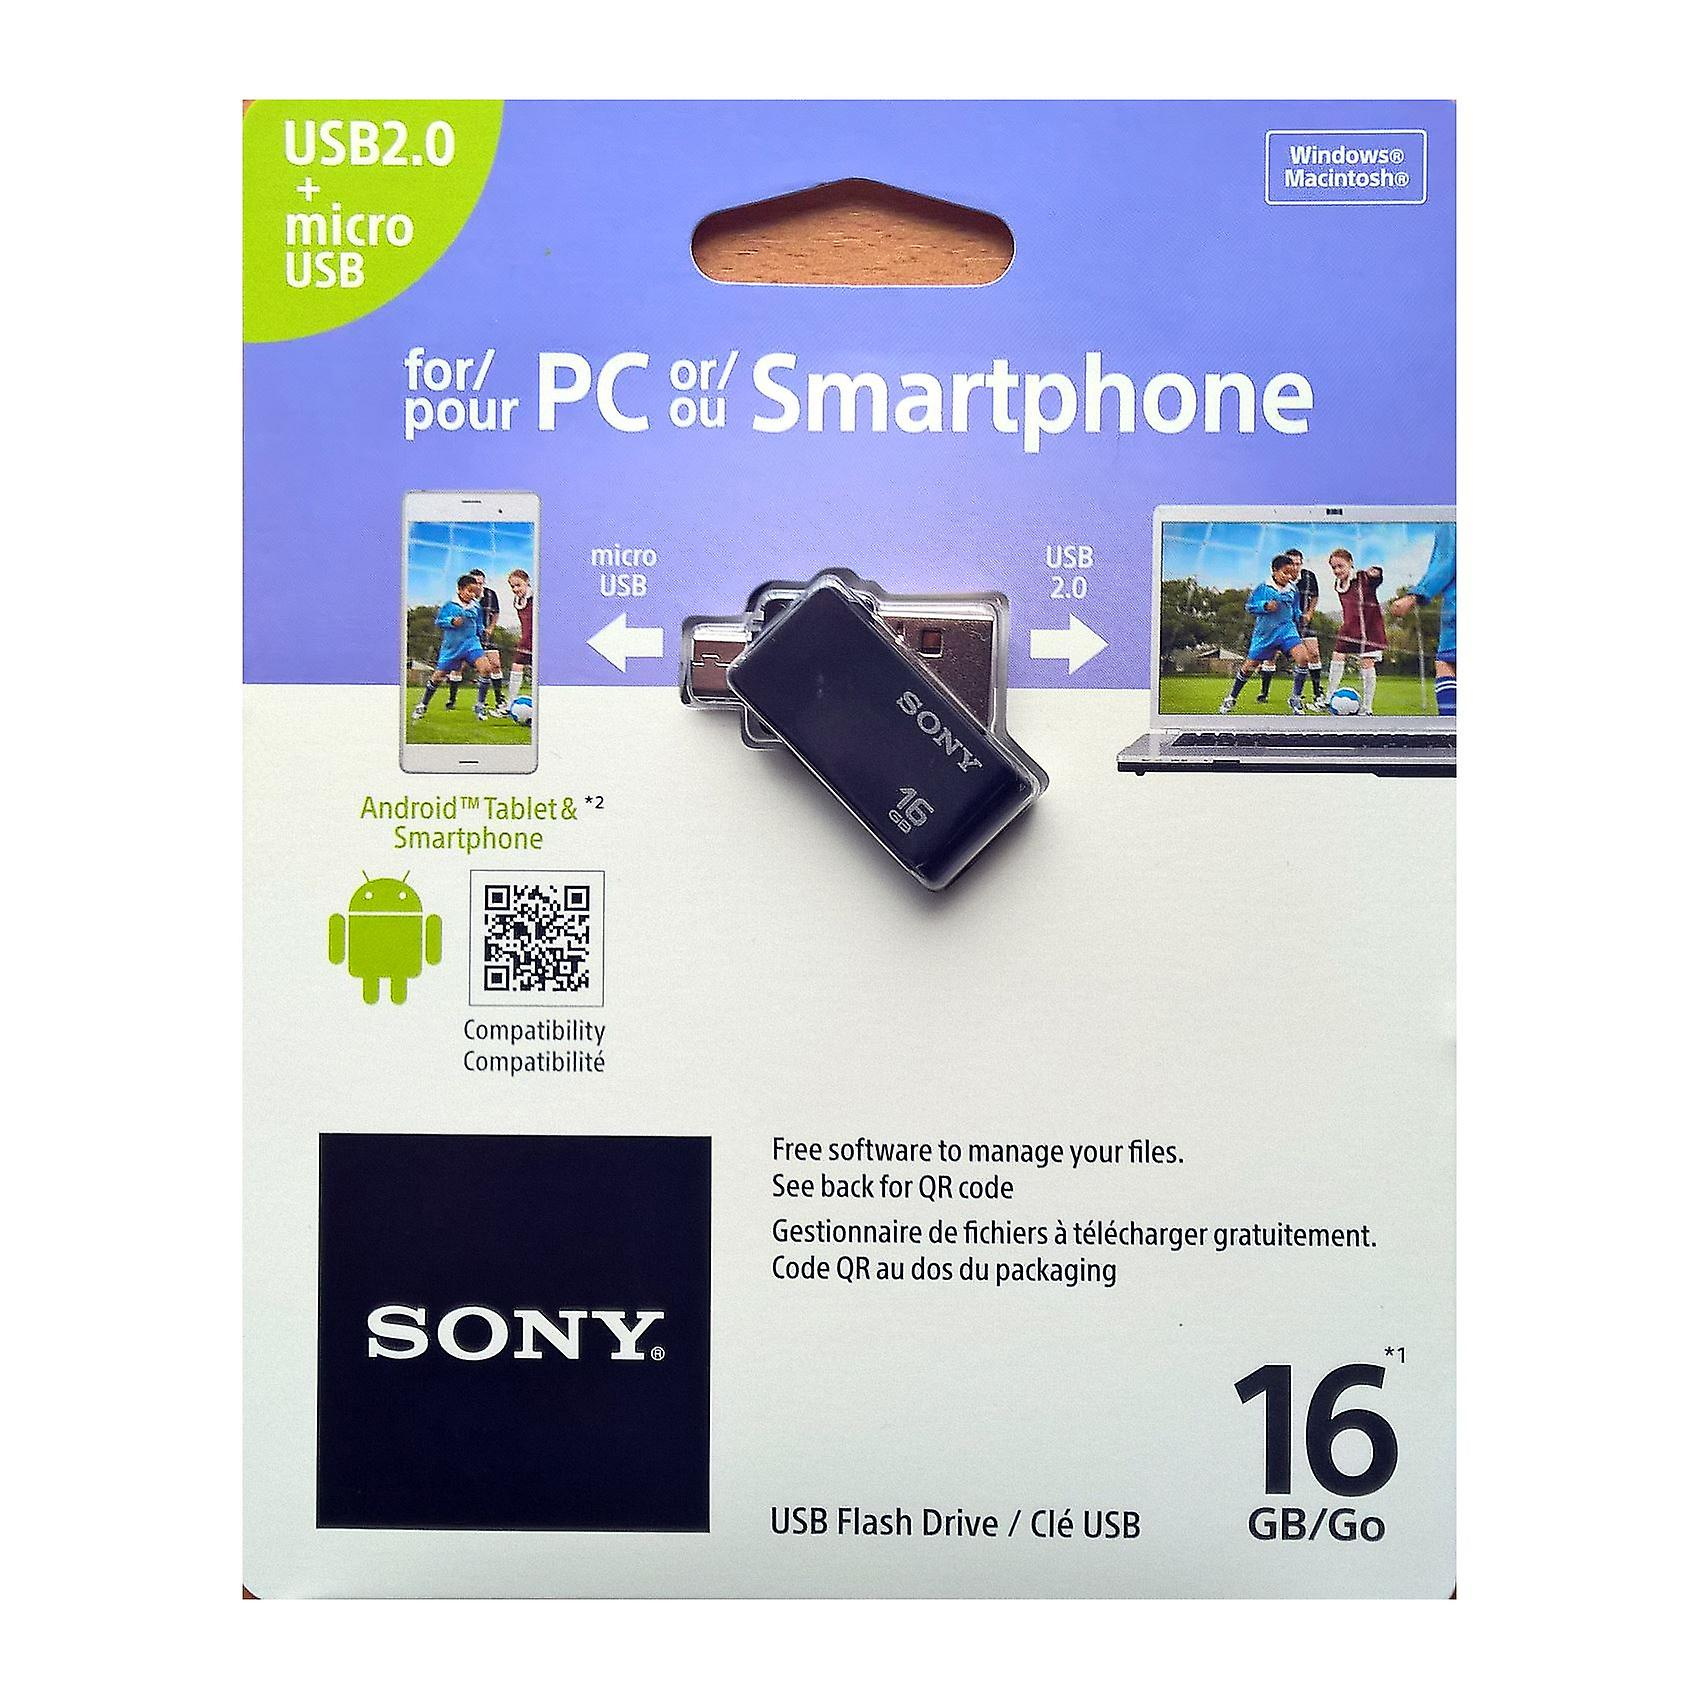 Sony 16GB OTG (On-The-Go) USB 2.0 Flash Drive for Android Devices - Black.